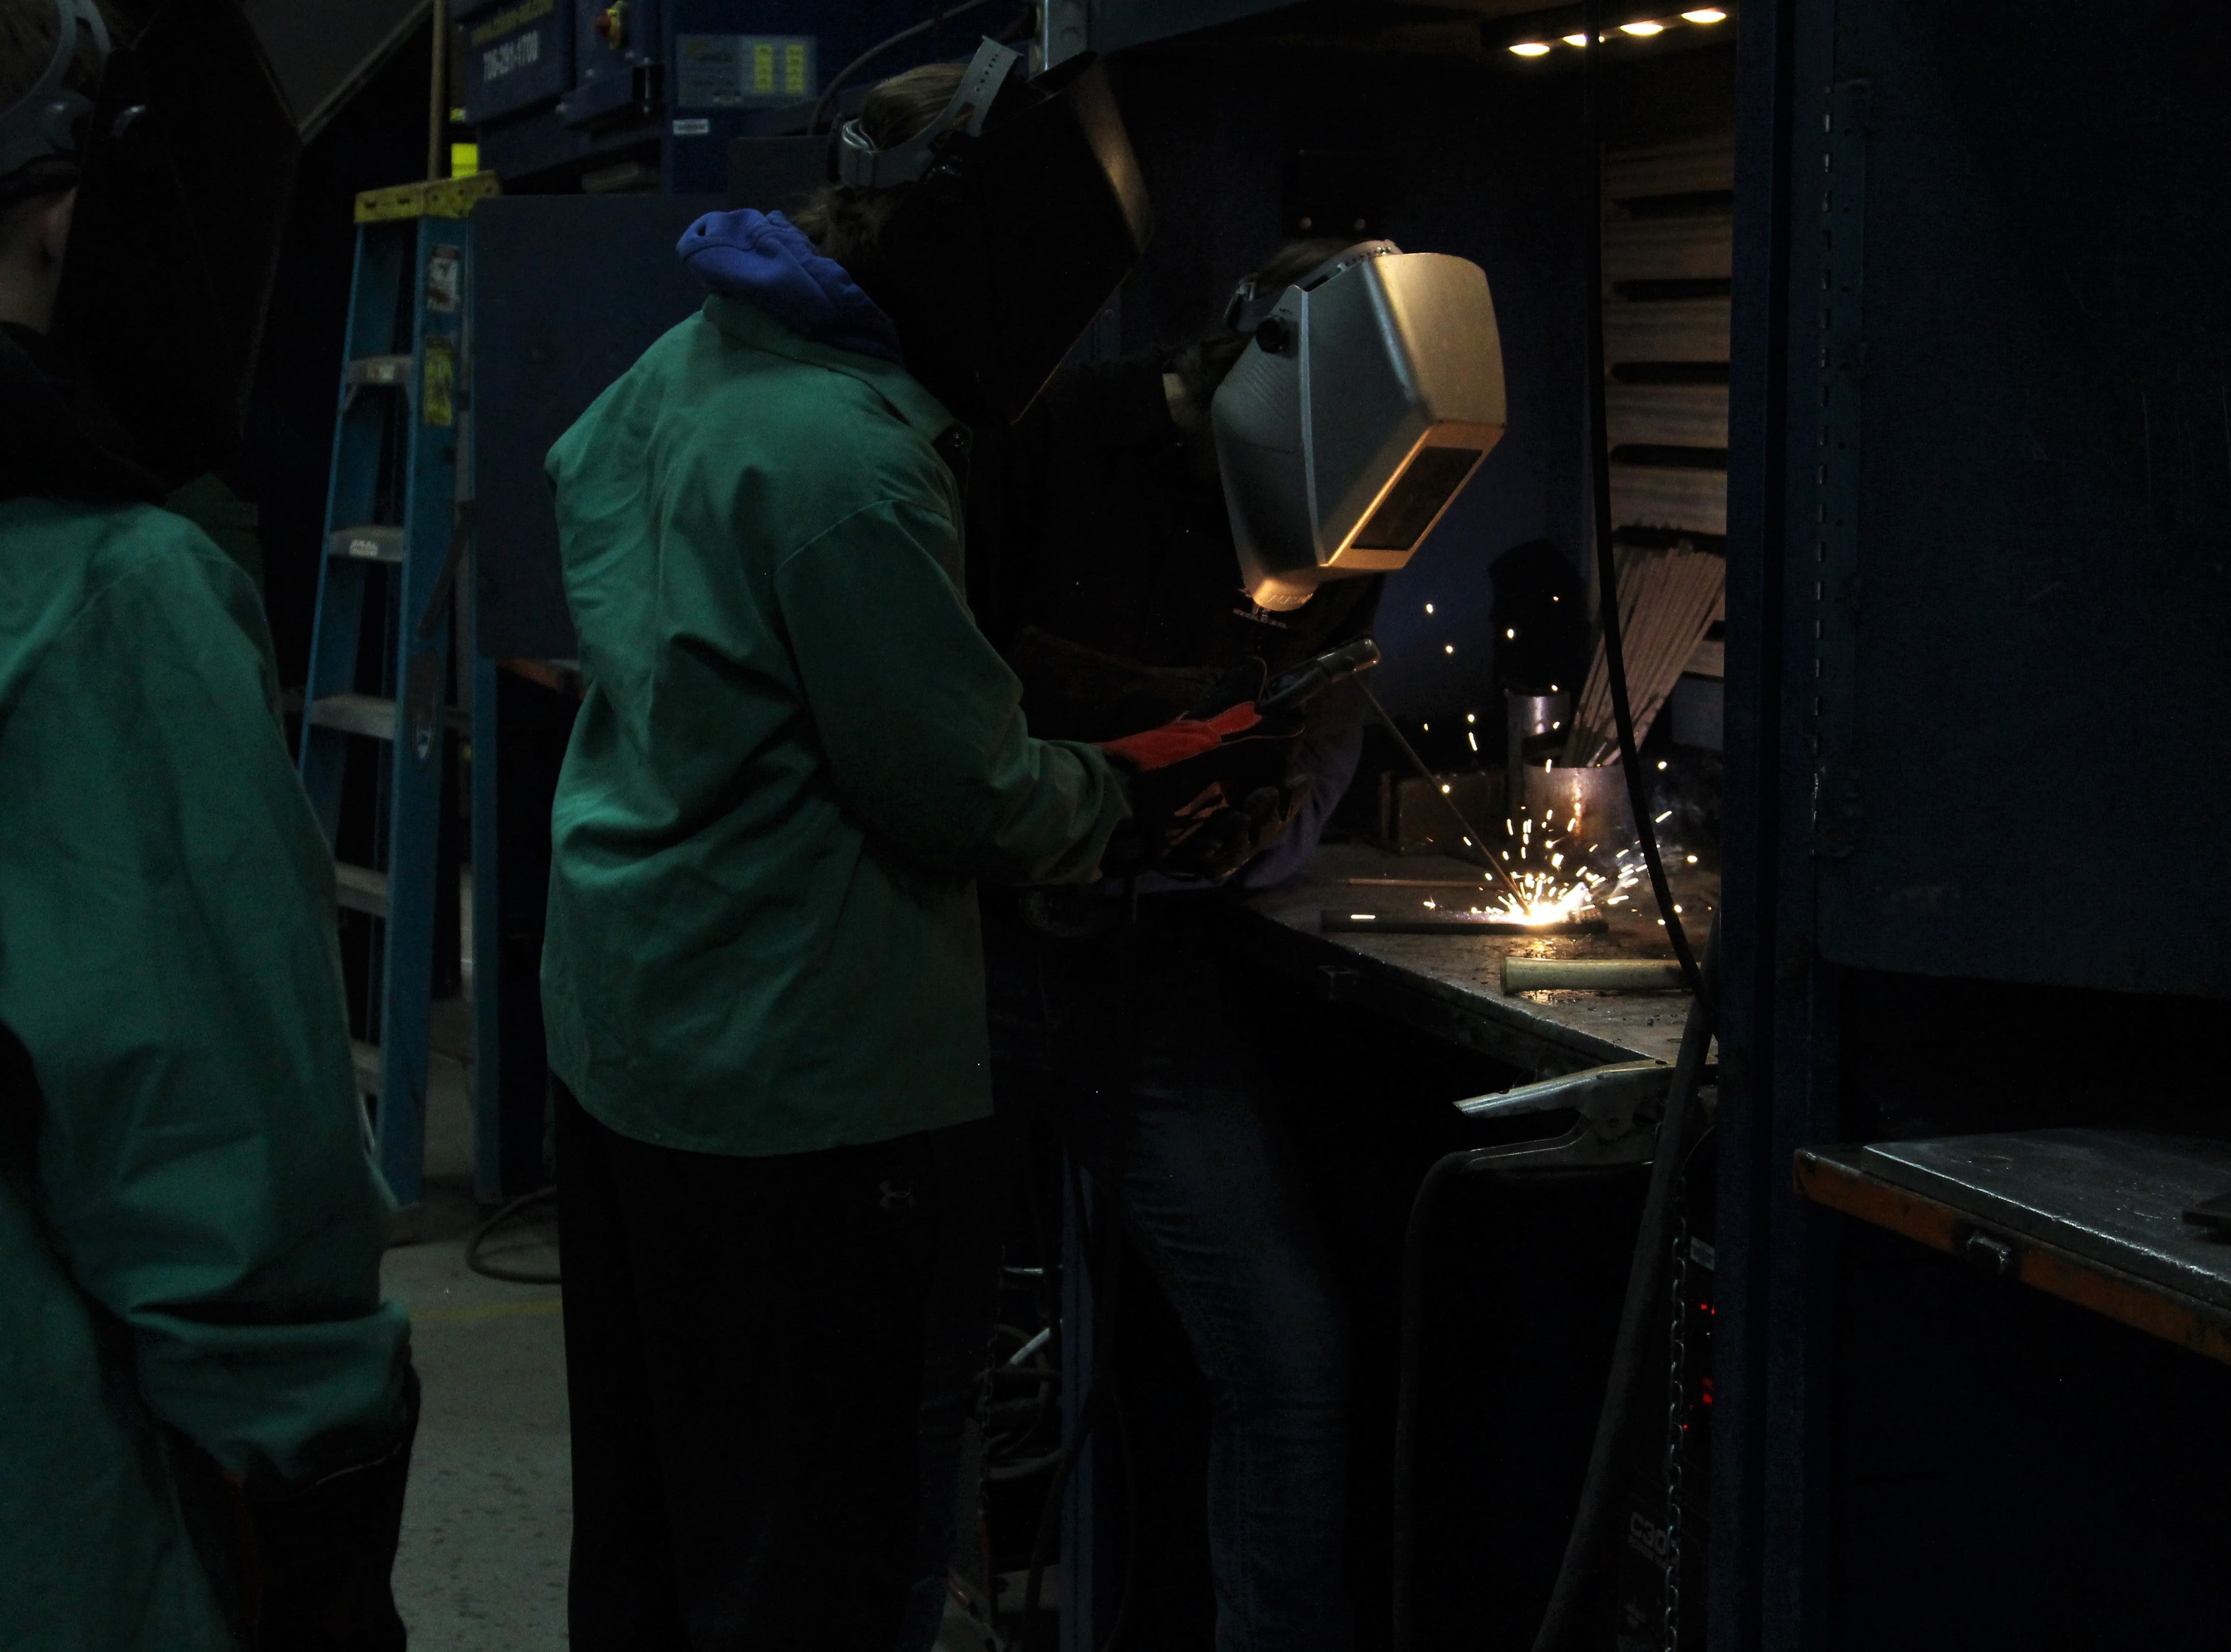 Tri-Rivers senior Brittany Fitch donned a welding helmet on Thursday as sophomores from Highland High School watched her work. They were part of 800 students who visited the career center that day and on Wednesday, as they bounced around several learning stations.